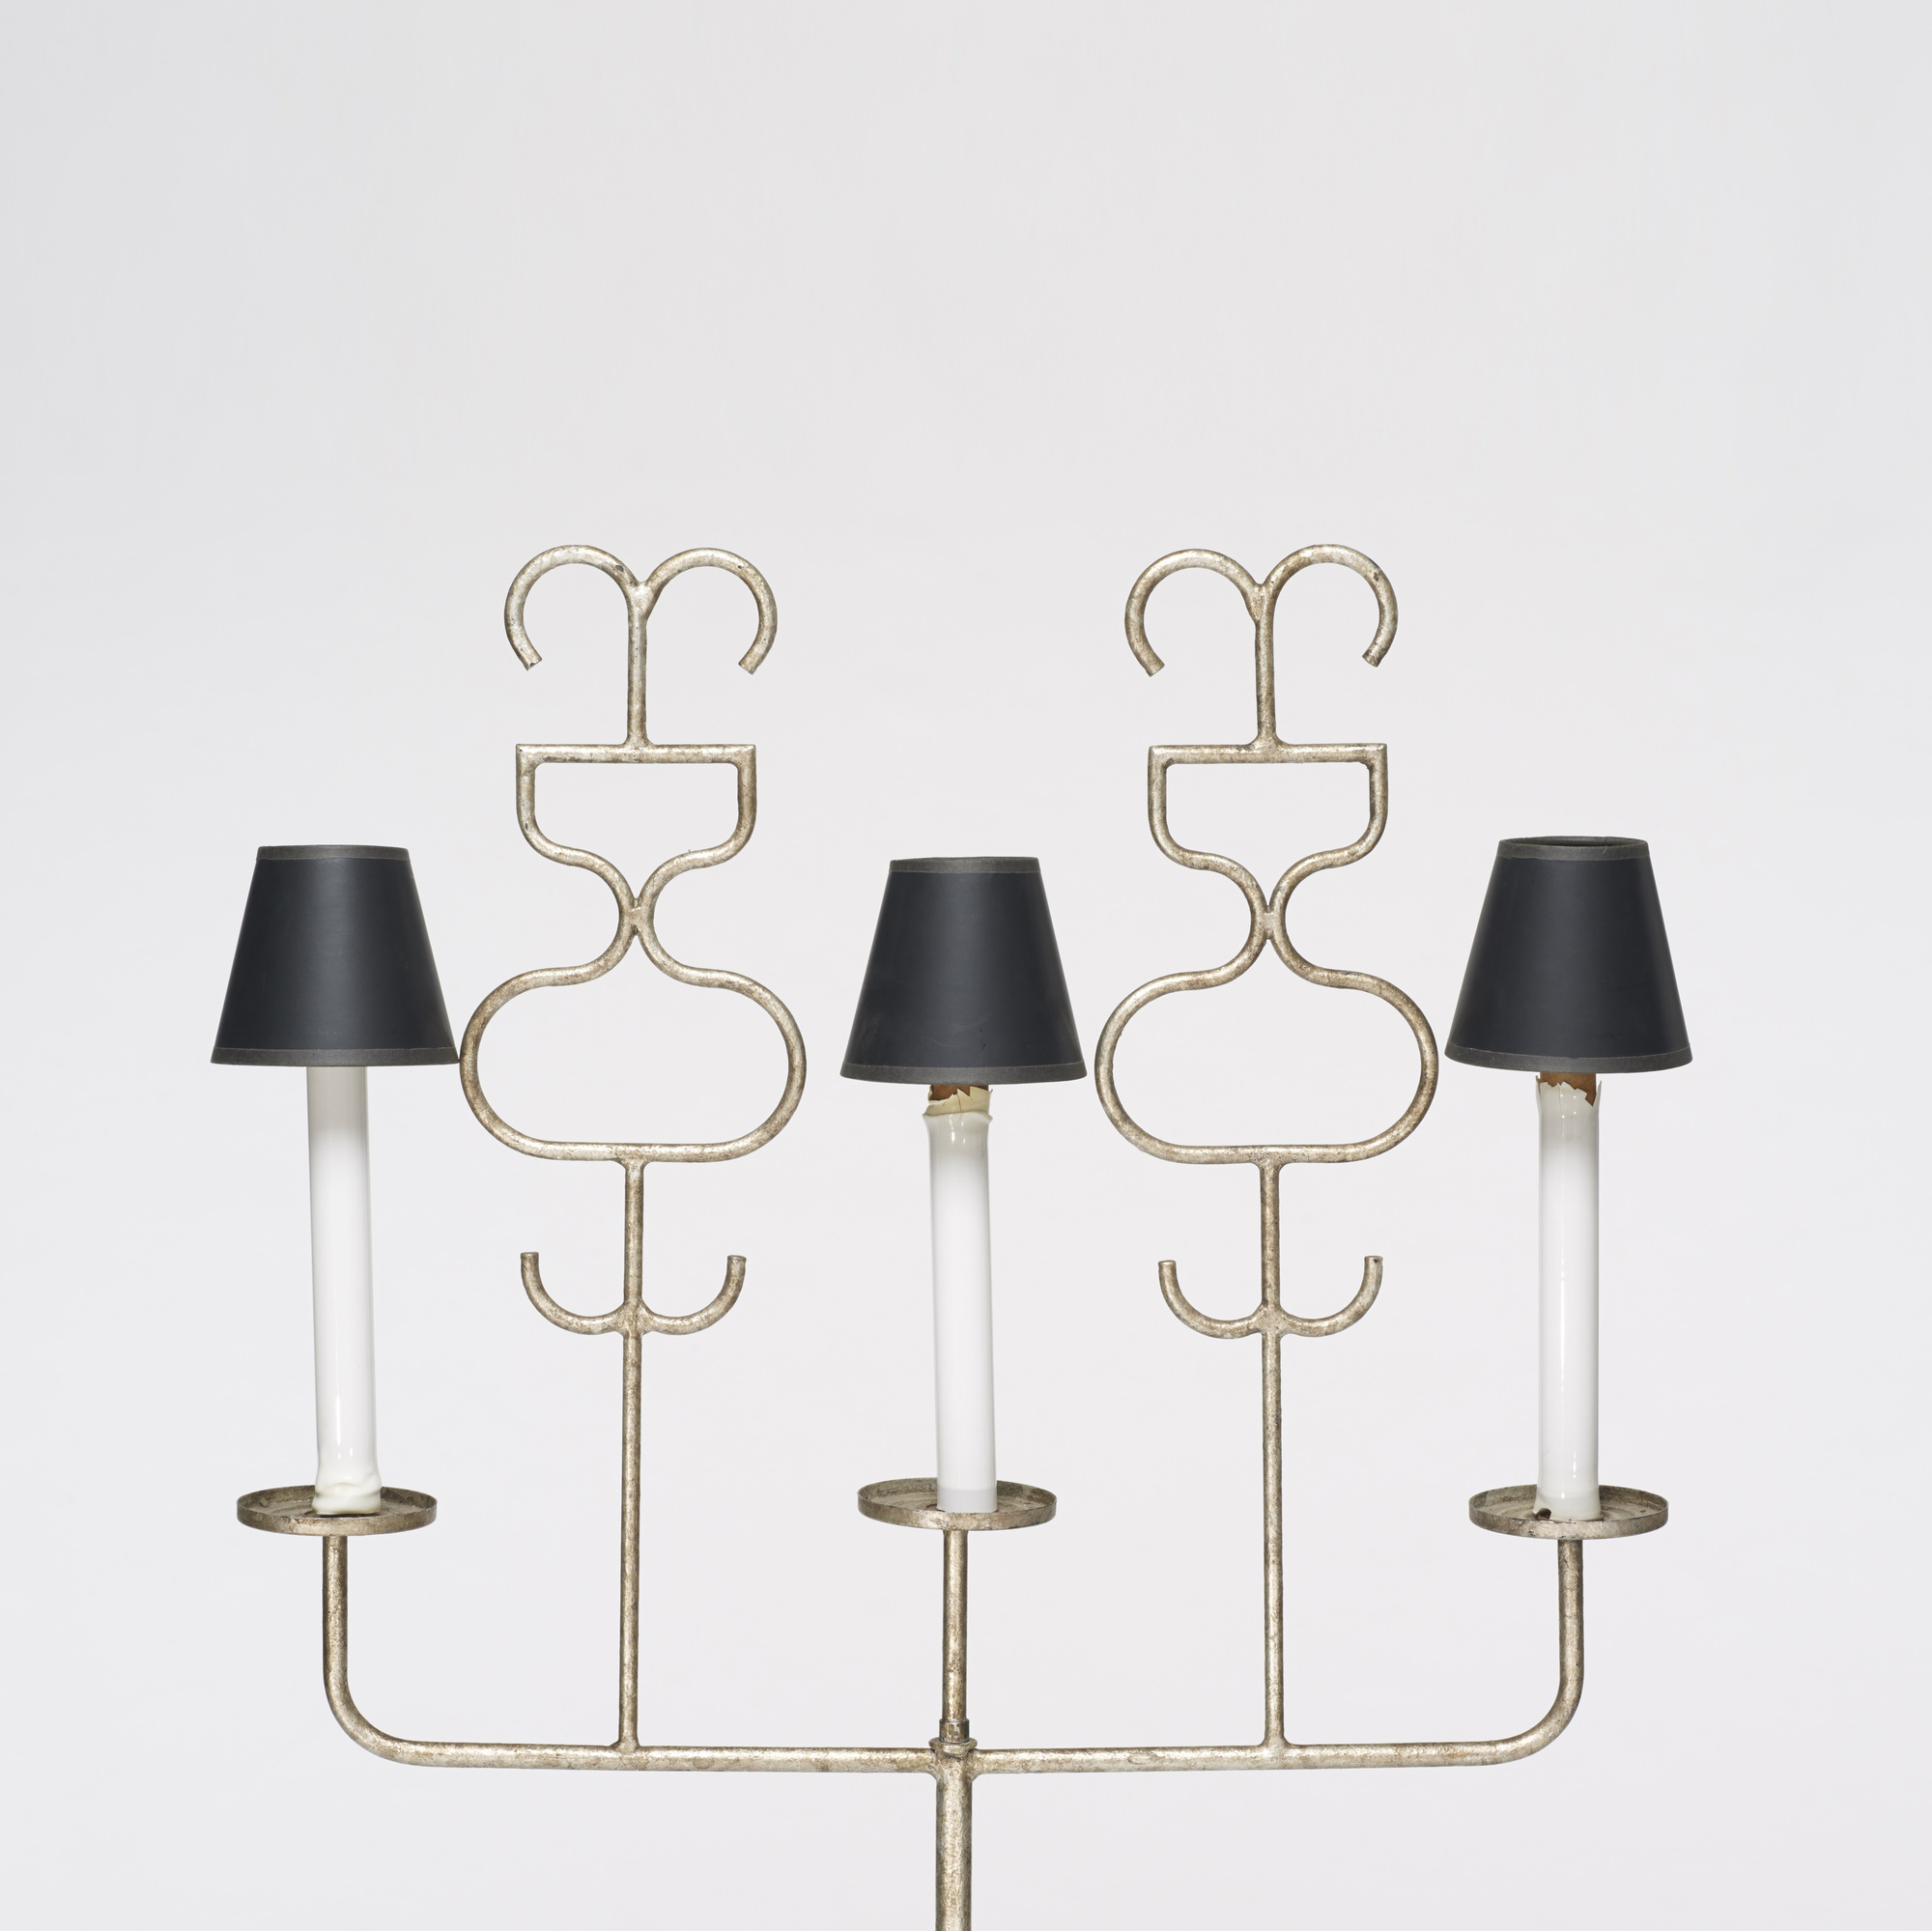 394: Tommi Parzinger / floor lamp (1 of 2)